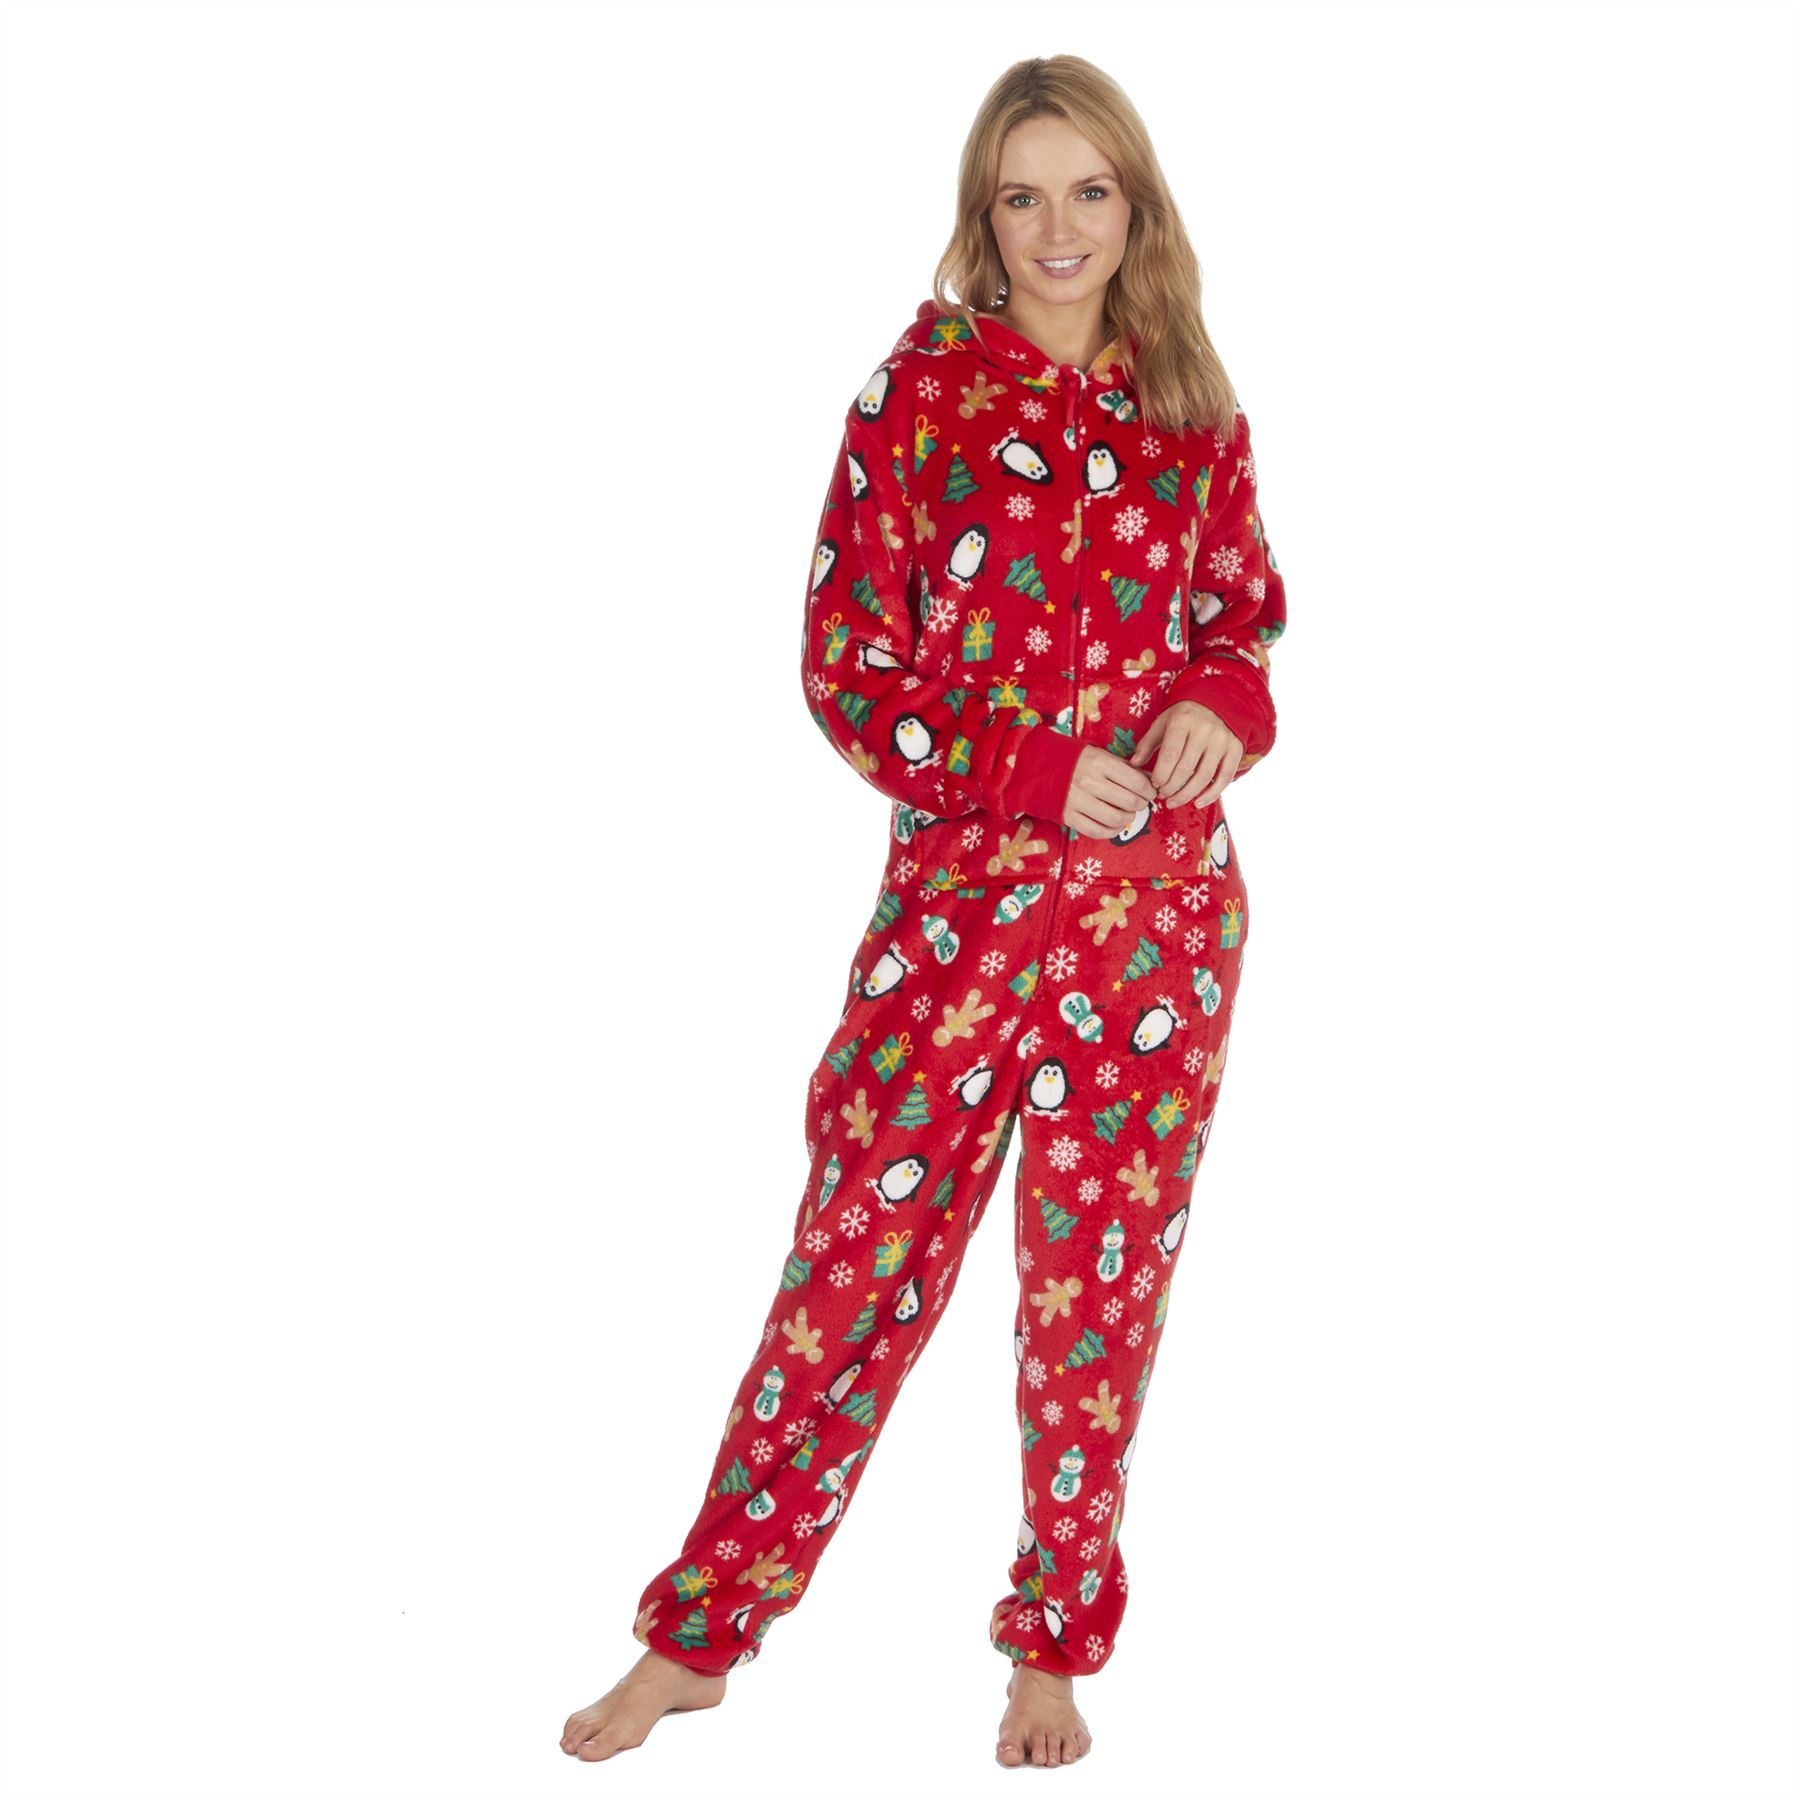 Ladies-Womens-Girls-Fleece-All-In-One-Pyjamas-Outfit-Jumpsuit-Costume-Size-6-18 thumbnail 52